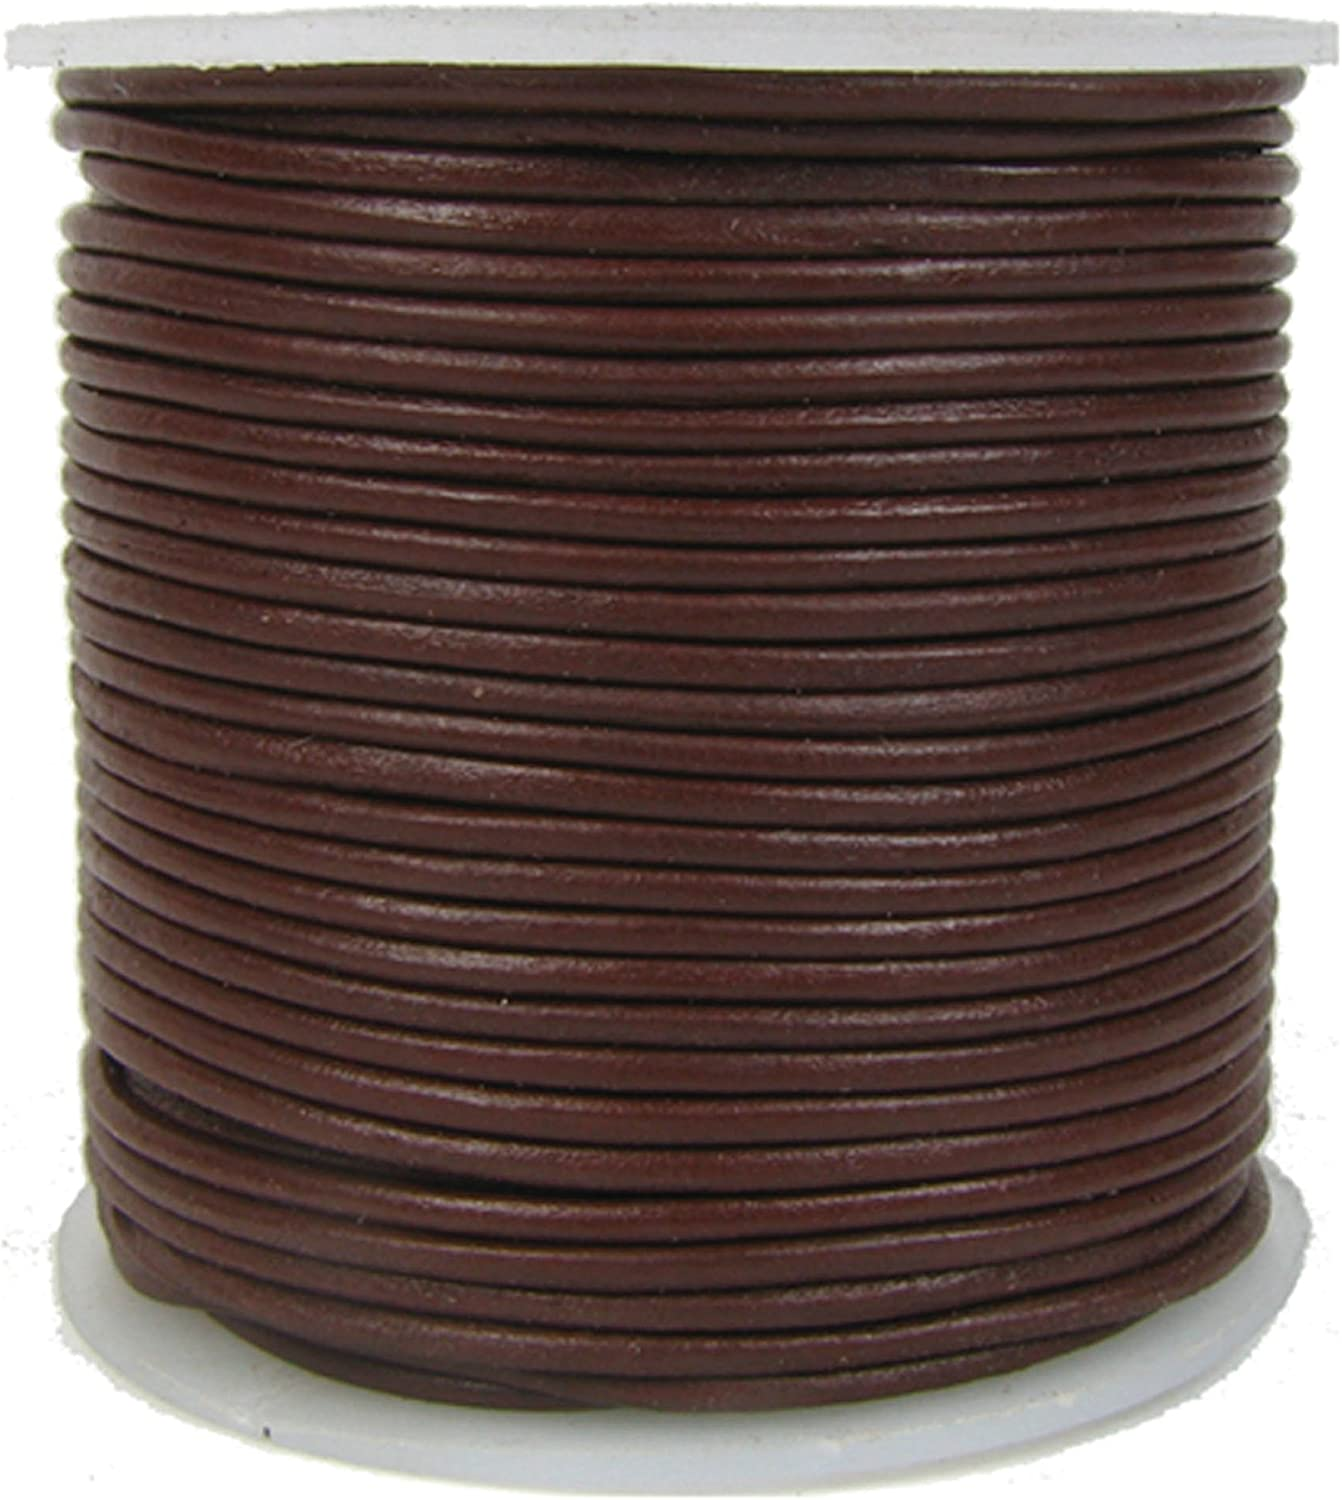 Gray Leather 1mm Leather 4 Yards 1mmDS-Brown Distressed Natural Brown Antiqued Rustic Round Leather or Cord